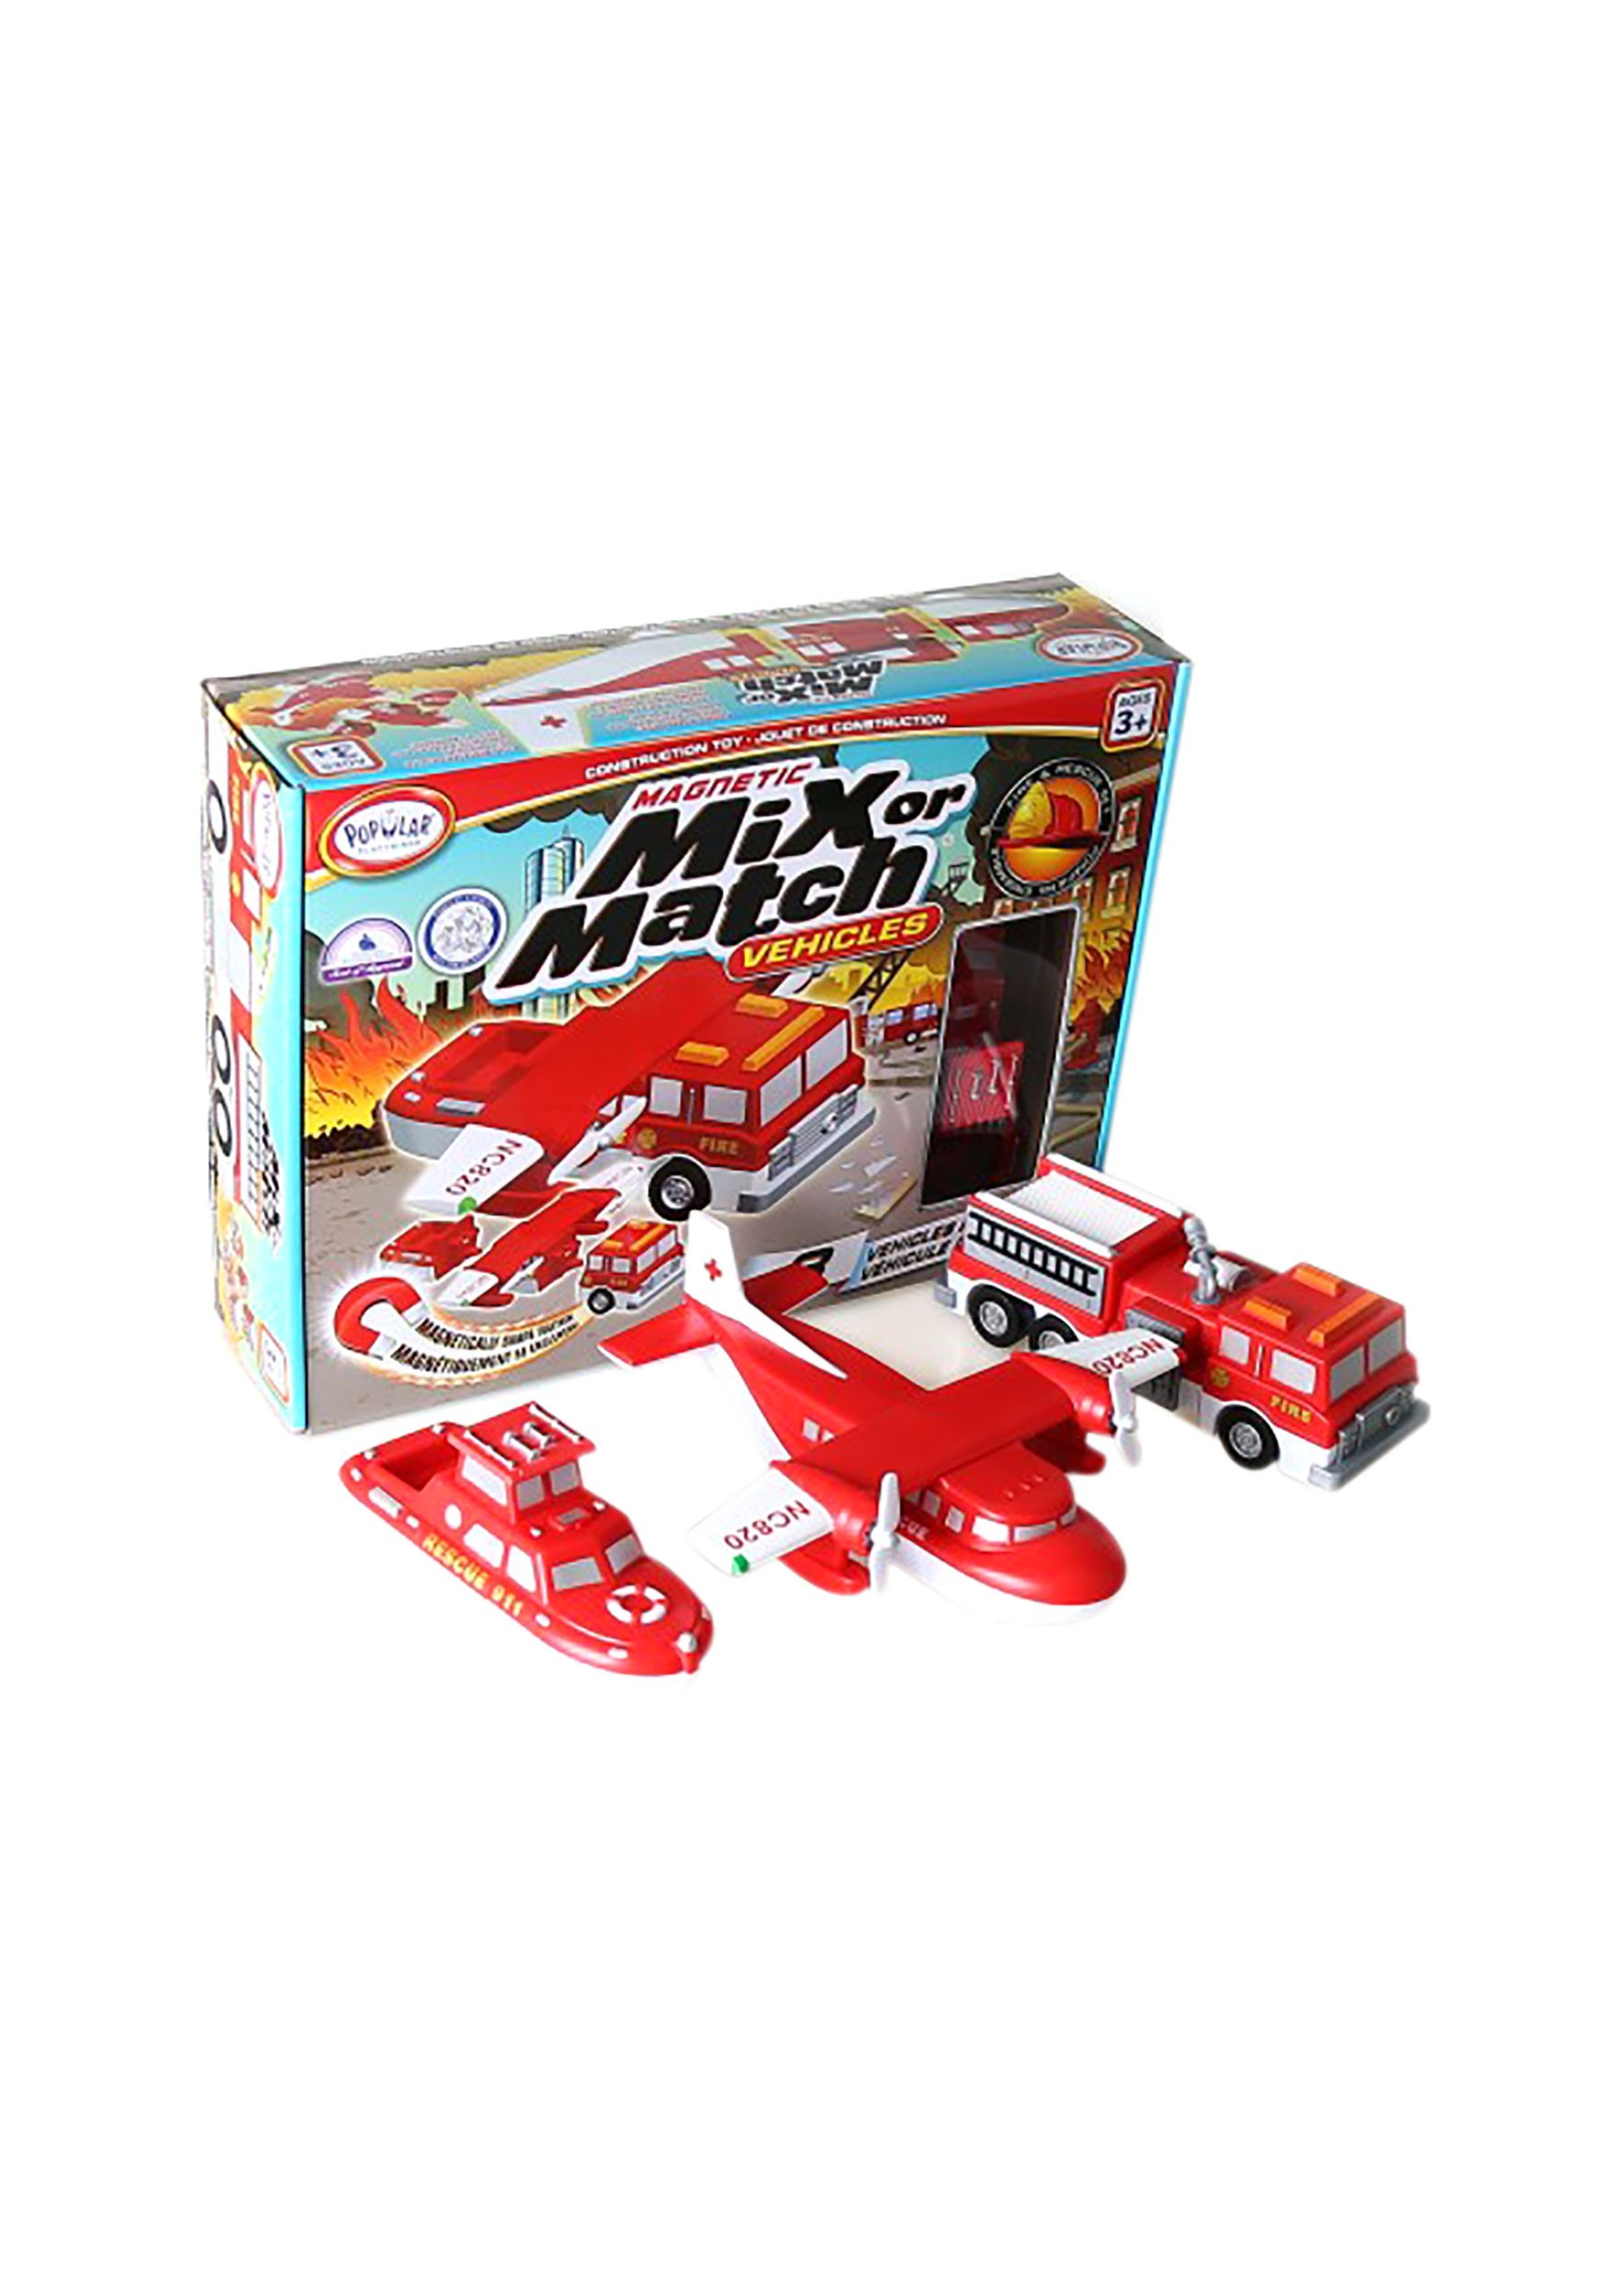 Magnetic Mix or Match Fire & Rescue Vehicles